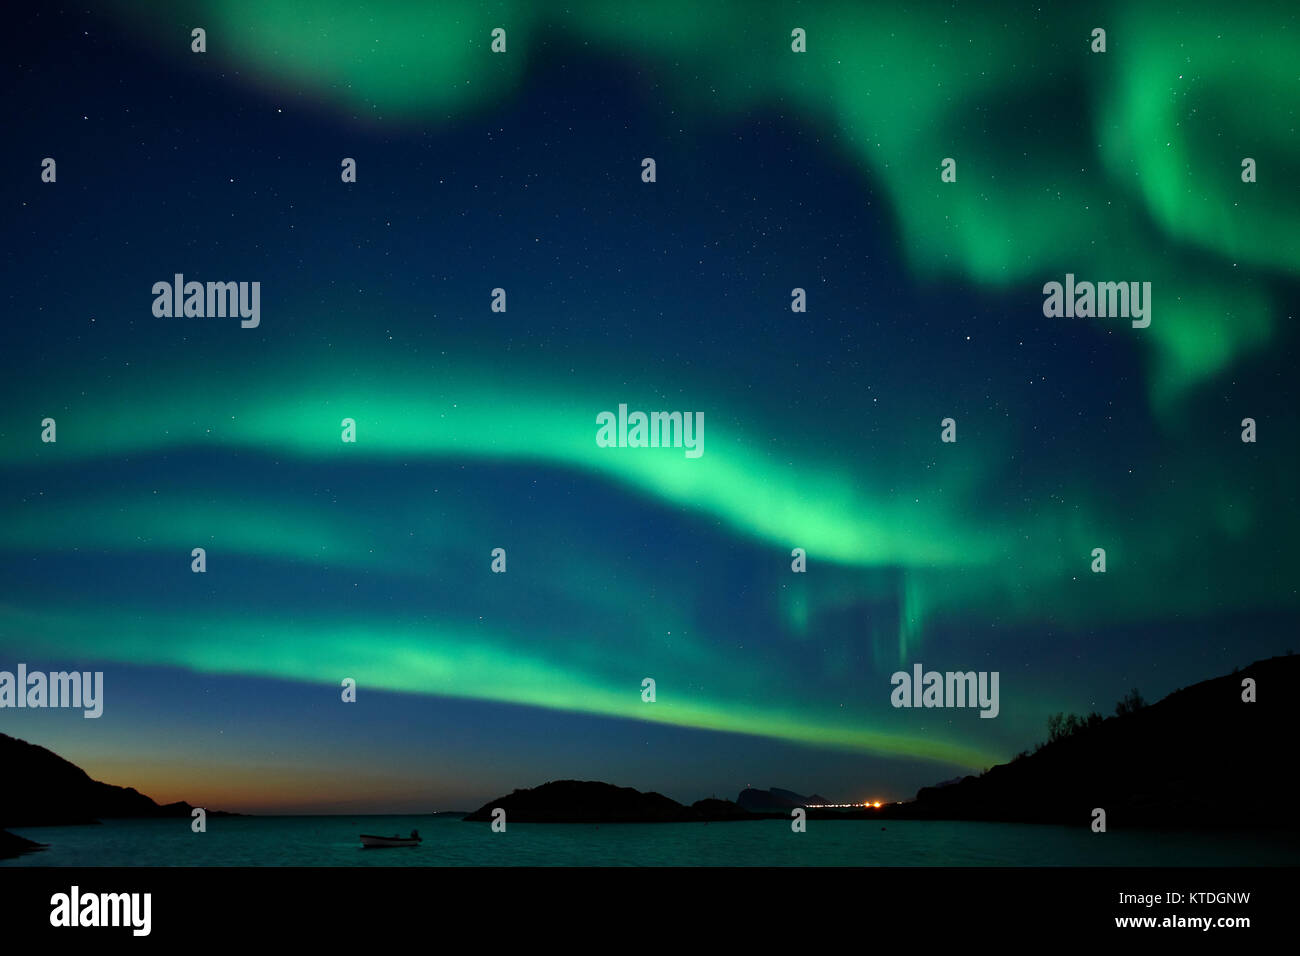 Aurora Borealis, Northern Lights, over Laukvik, Lenvik, Senja, Troms, Norway - Stock Image